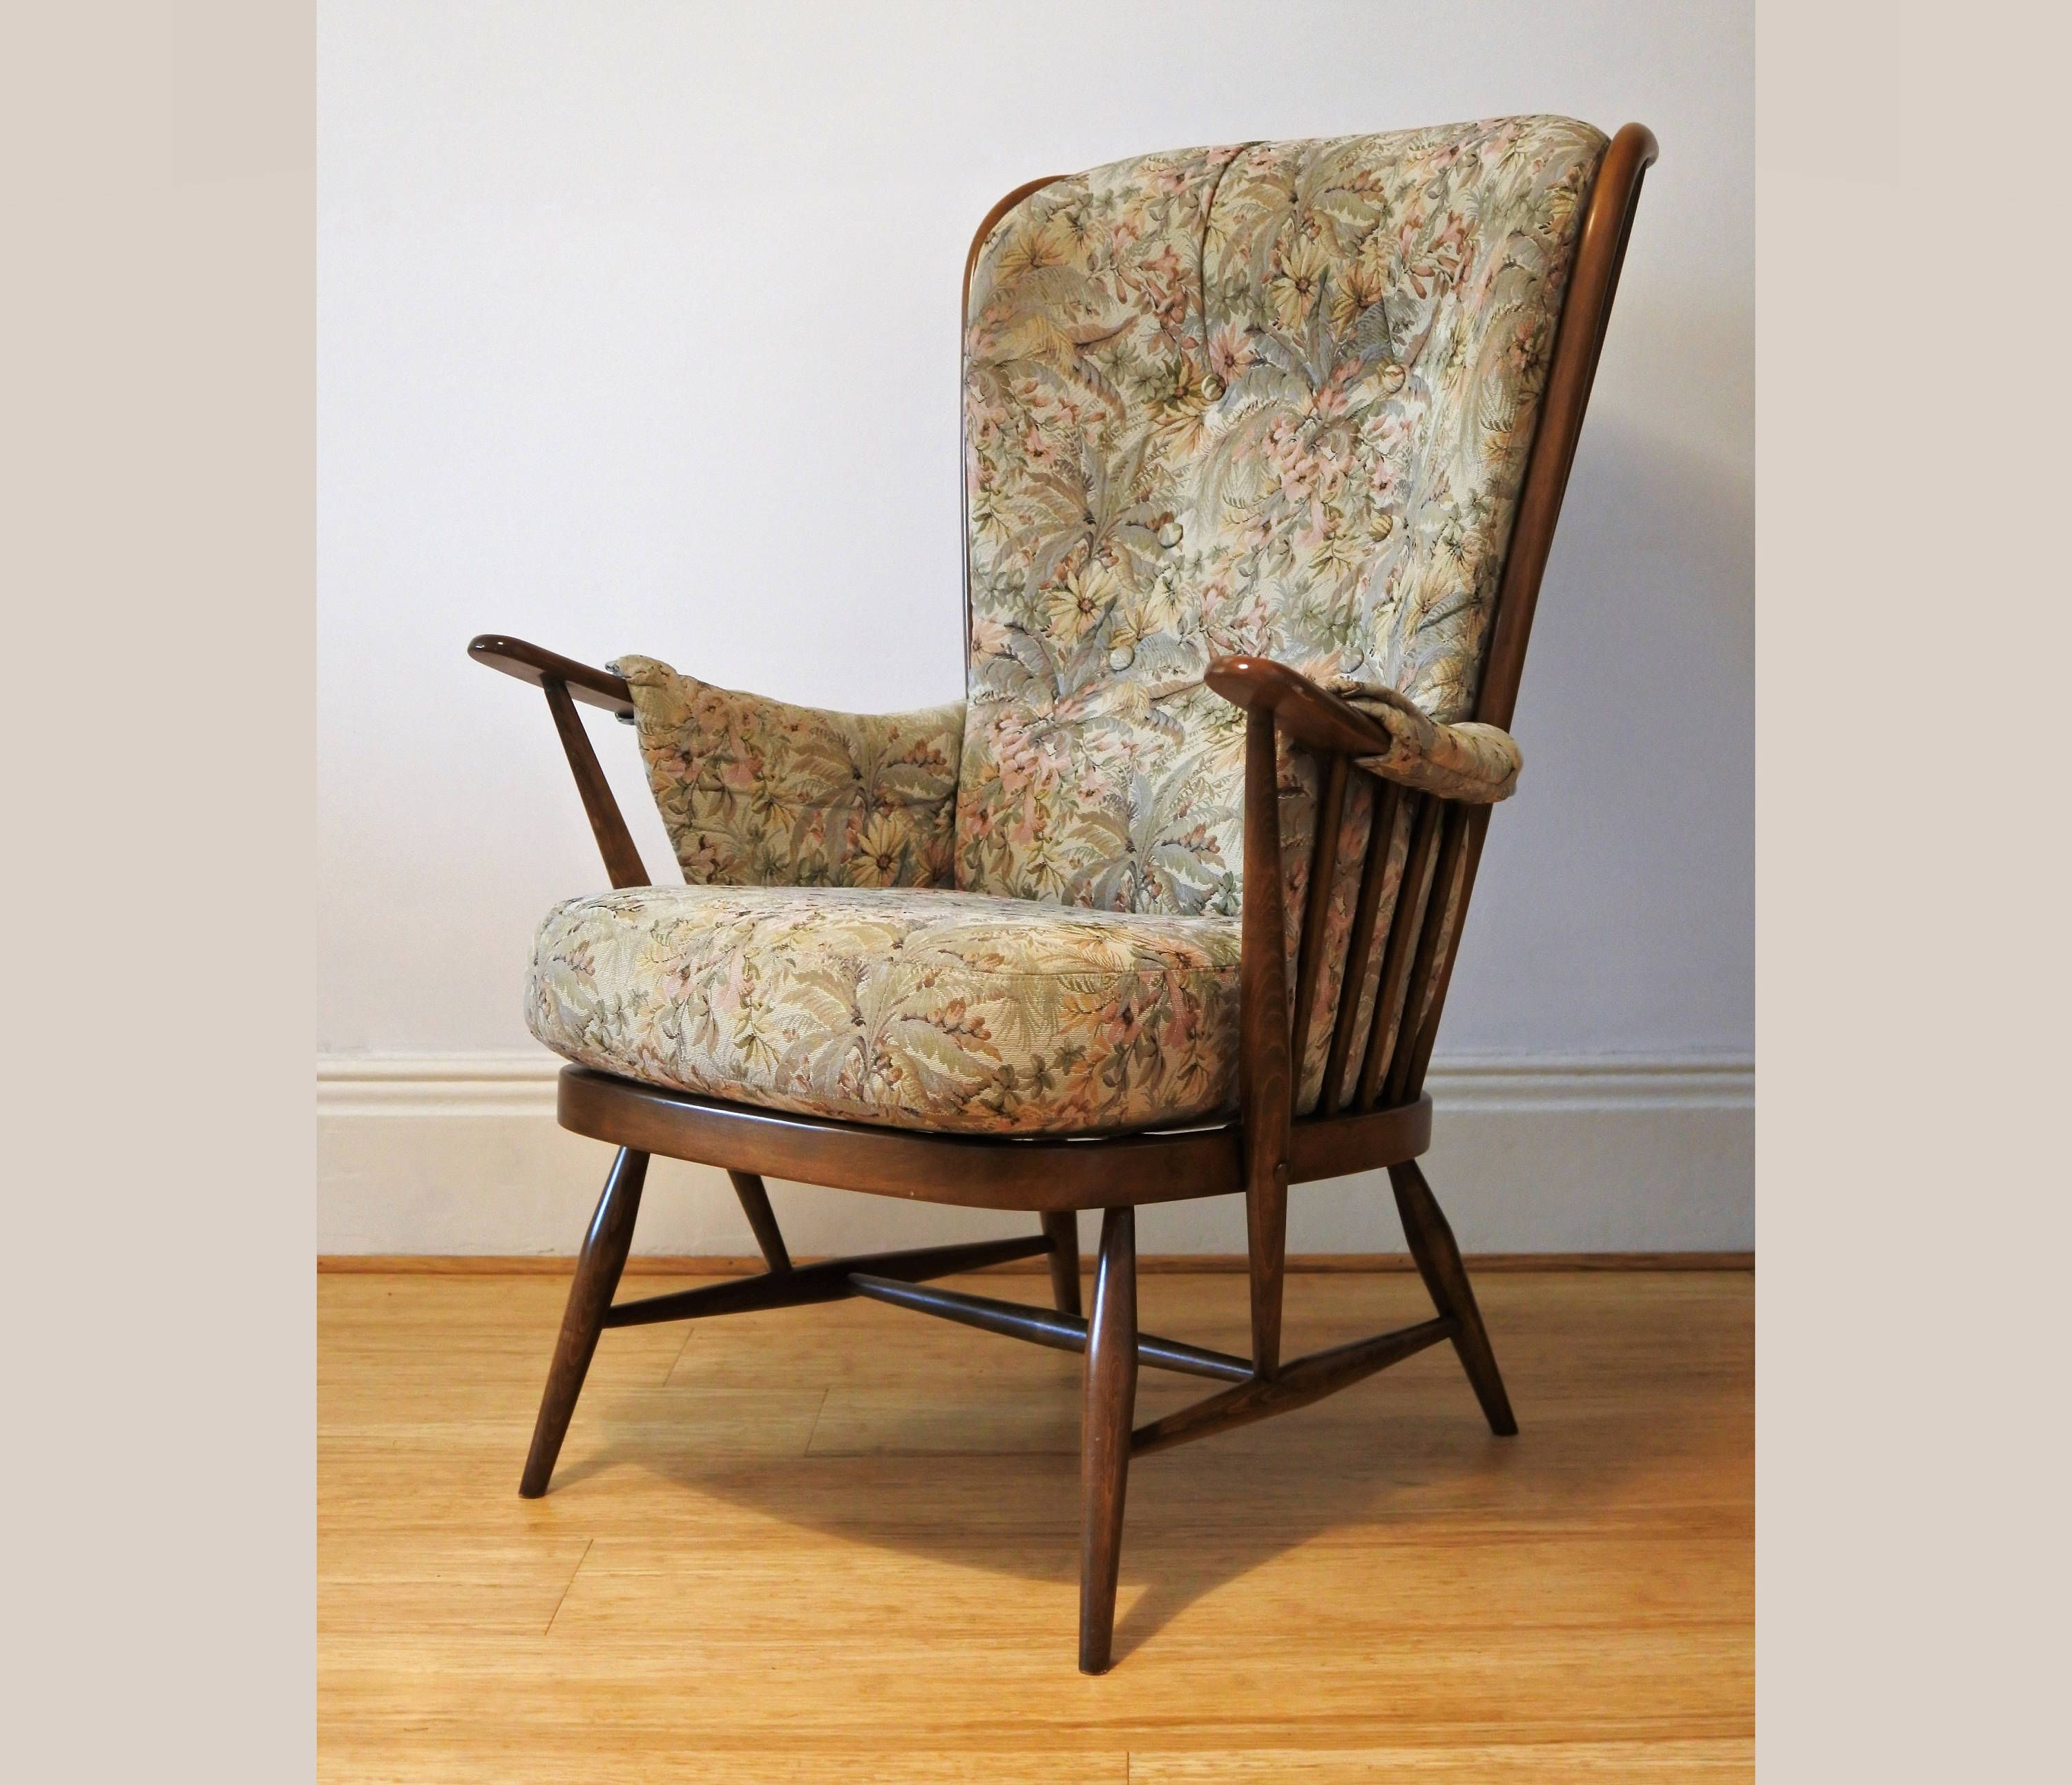 Ercol Windsor Evergreen Easy Chair In Golden Dawn Finish 913 Etsy Easy Chair Ercol Chair